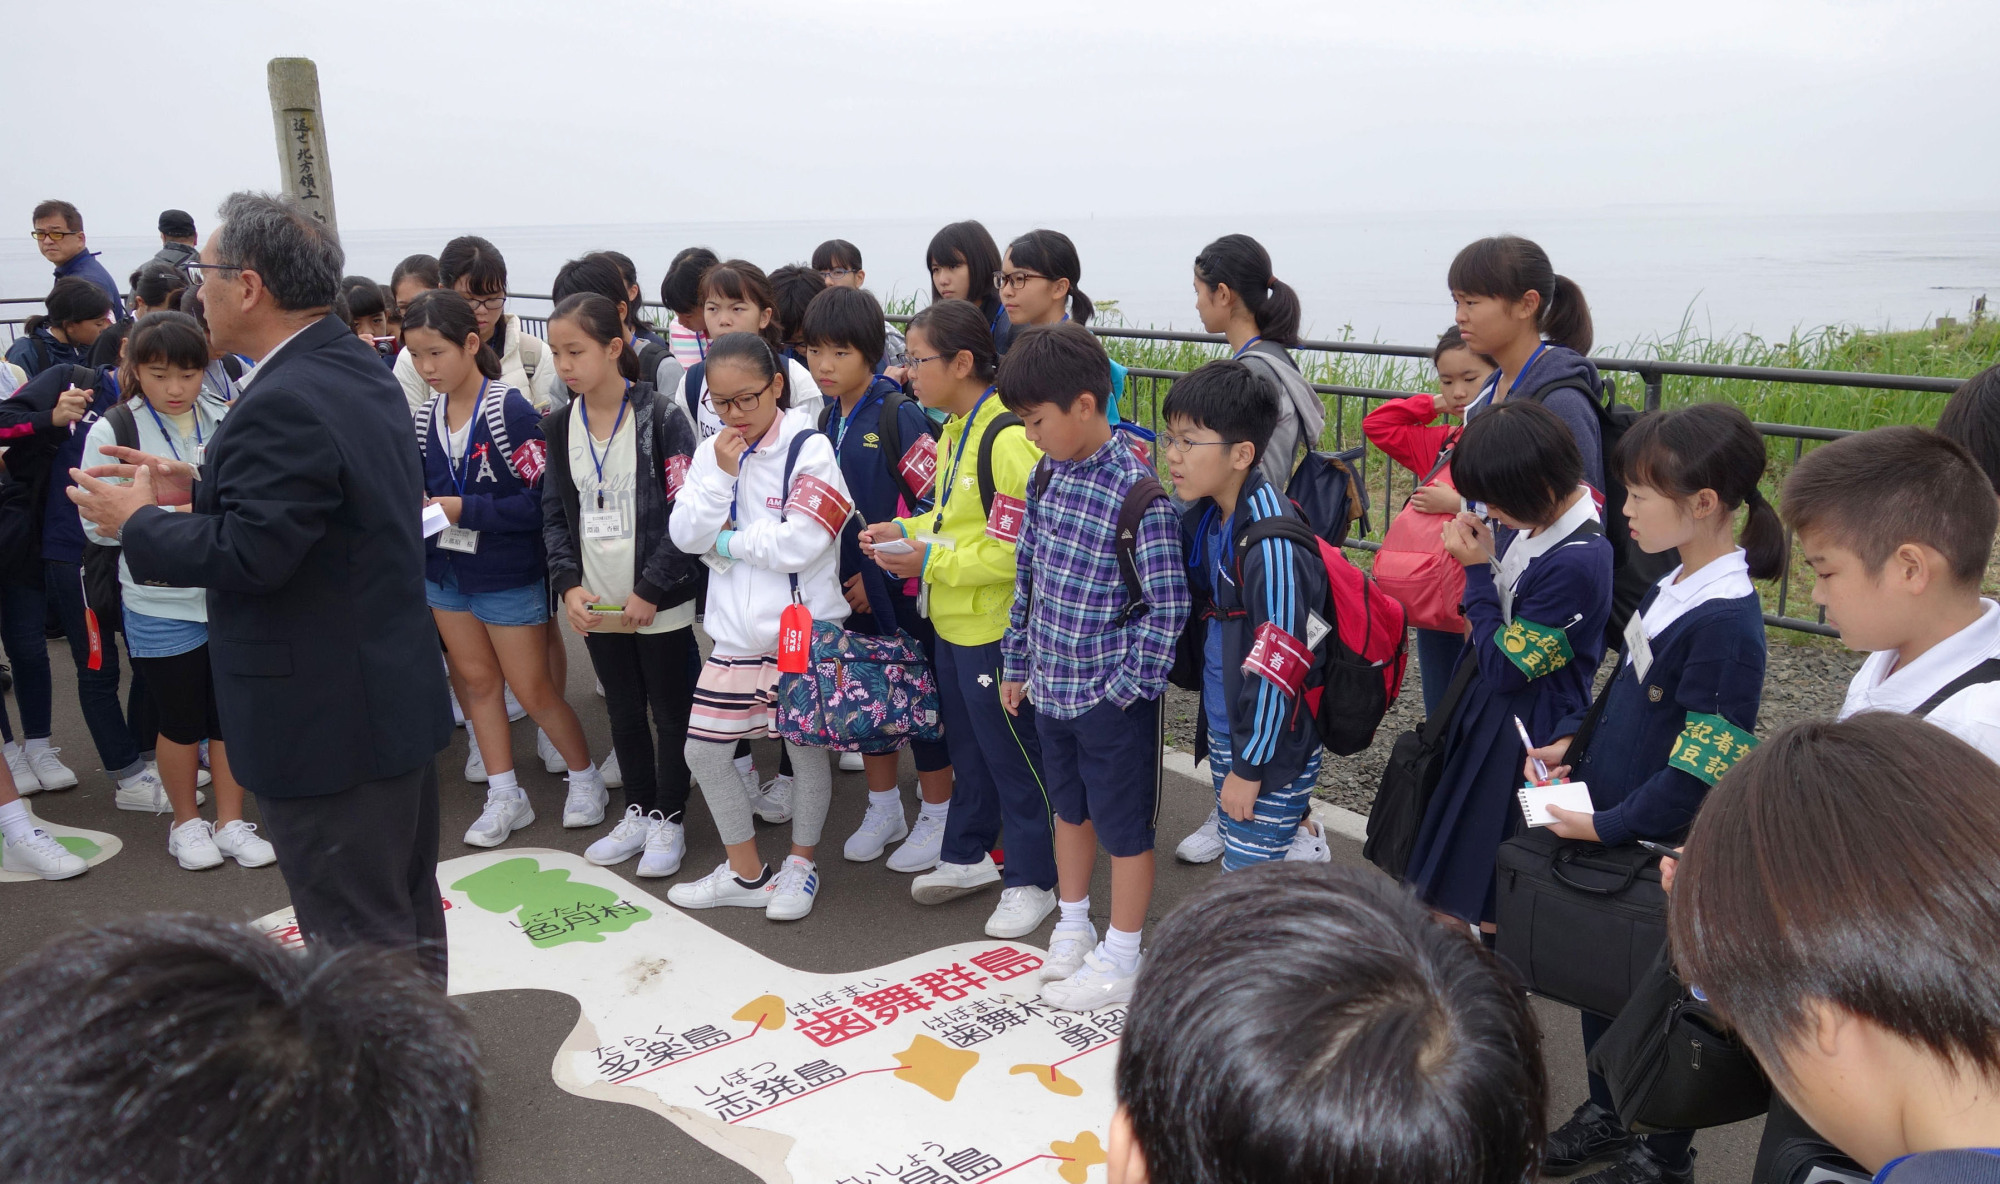 Elementary school students from Hakodate visit Cape Nosappu in Hokkaido during an introductory journalism event in August to study about the Russian-held islands claimed by Japan. The government plans to promote school trips to the area to raise young people's awareness of the issue. | KYODO